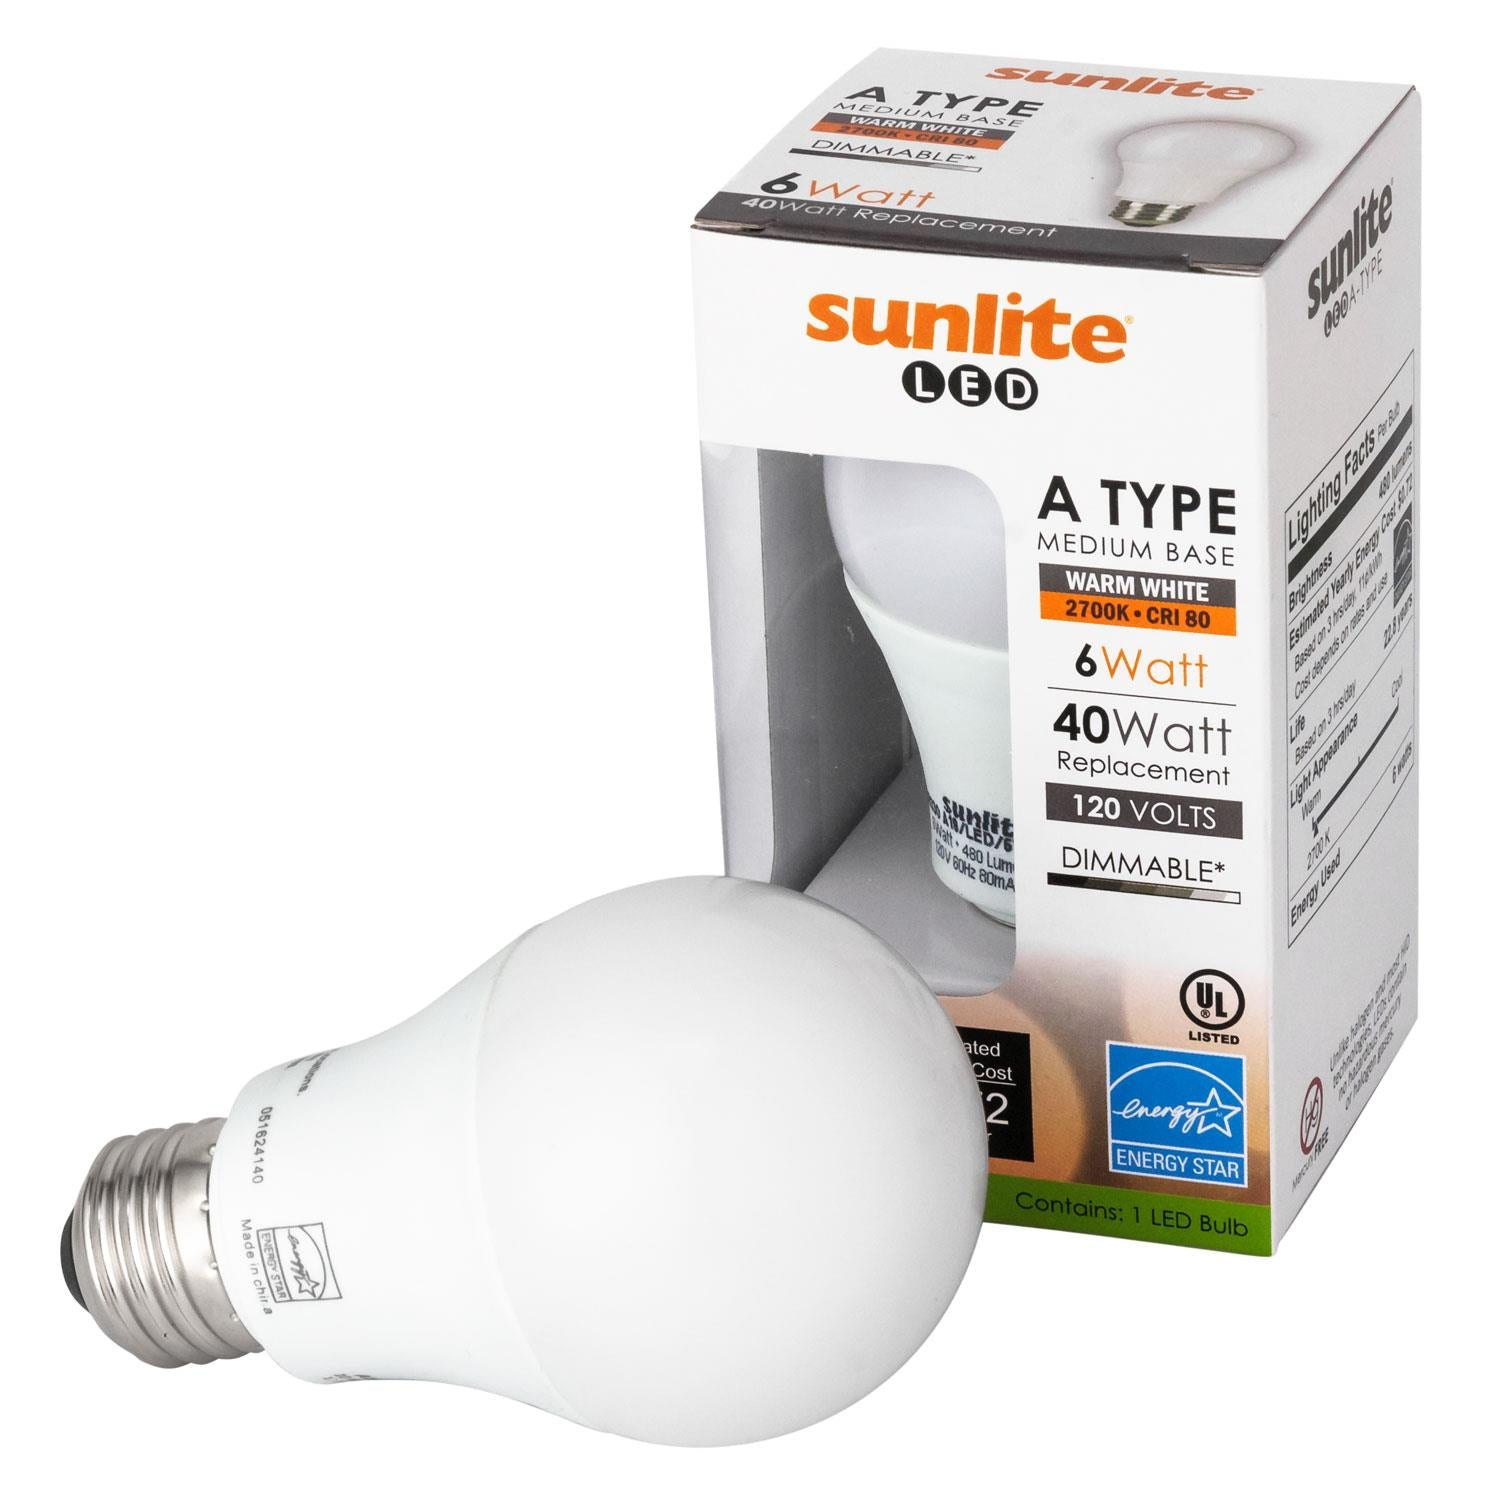 SUNLITE 88332-SU LED 6w A19 Light Bulbs Energy Star Dimmable 5000K Super White